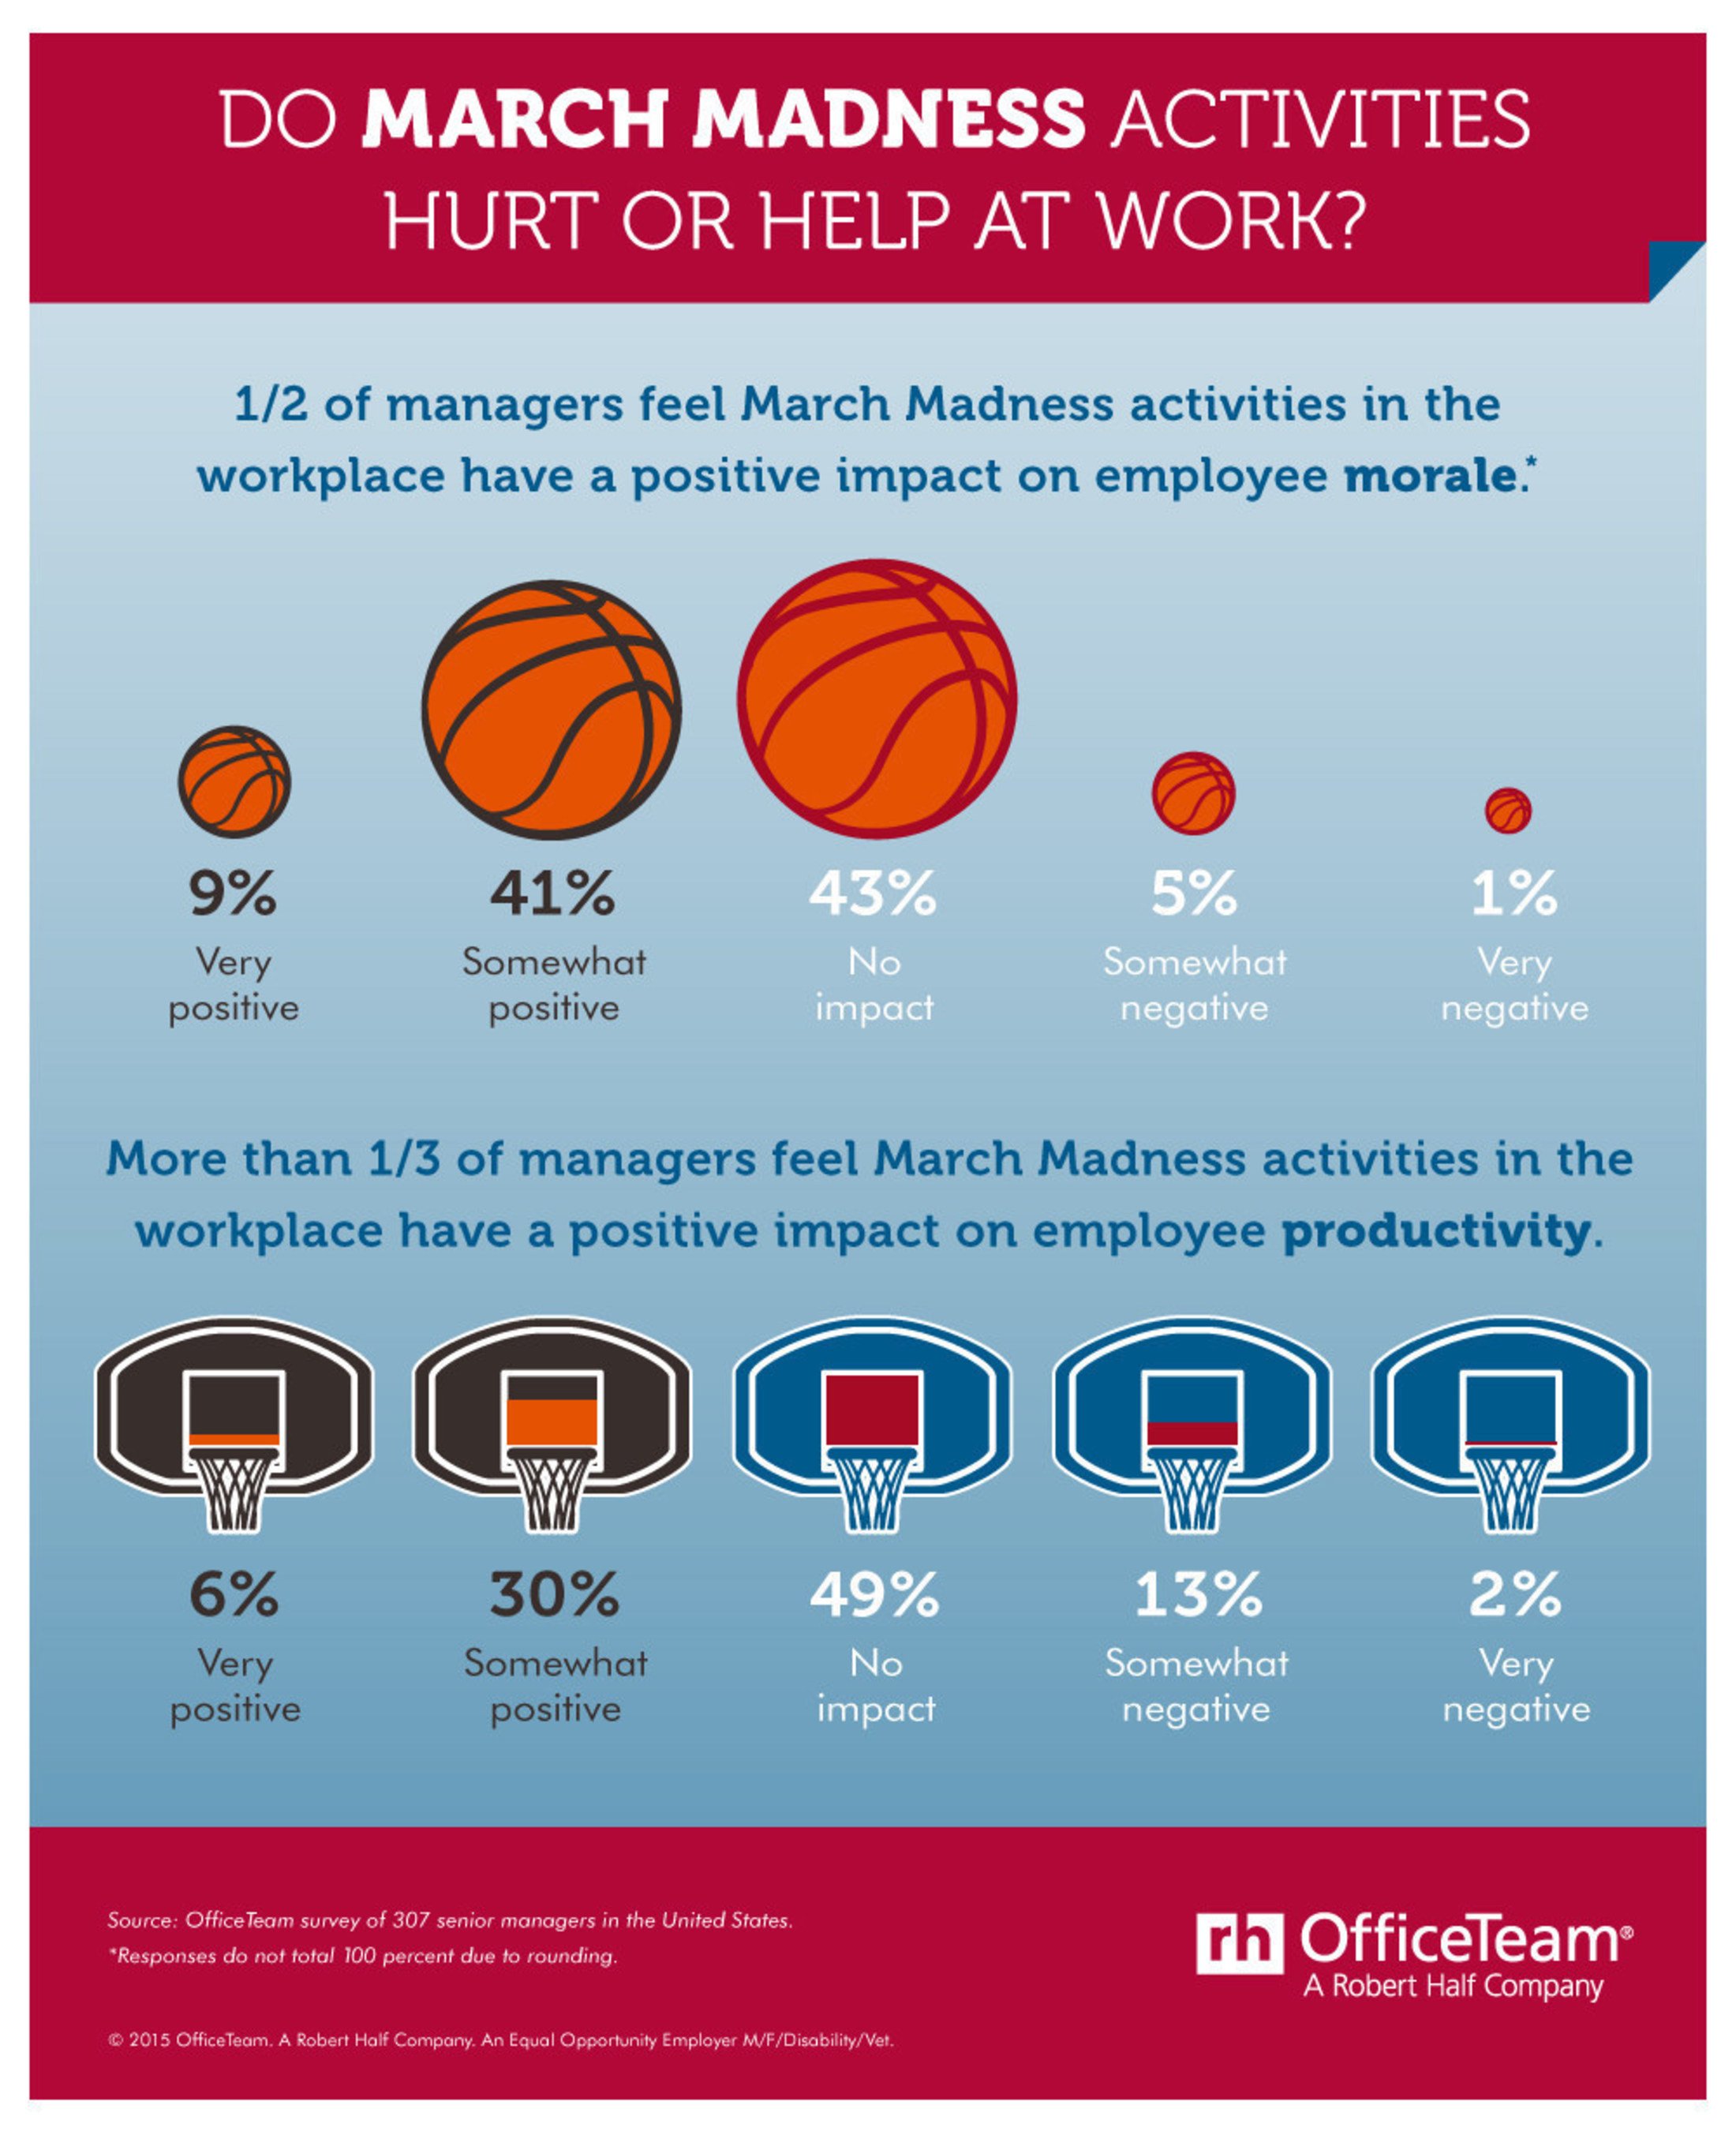 According to an OfficeTeam survey, half (50 percent) of senior managers said activities tied to the college basketball playoffs boost employee morale, and more than one-third (36 percent) felt March Madness has a positive impact on workplace productivity.